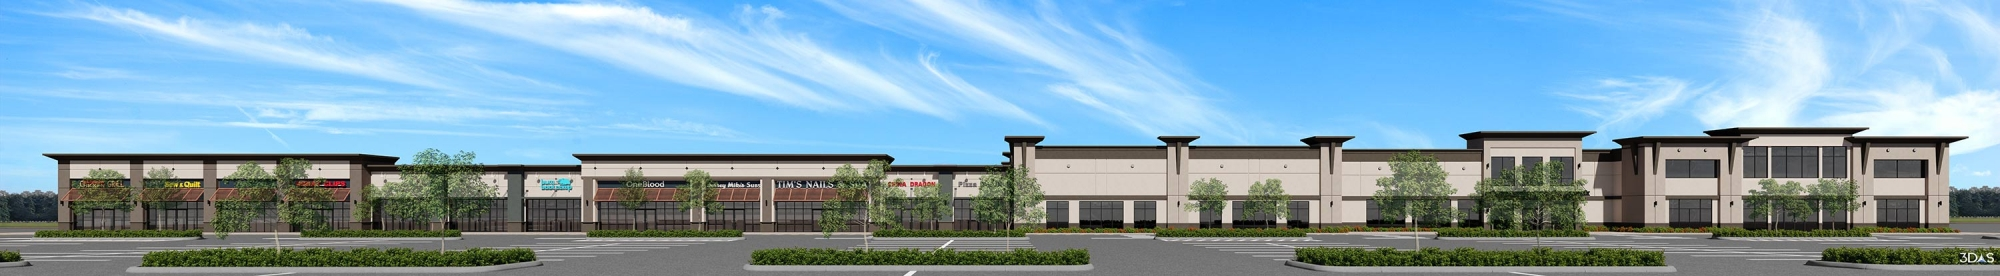 Shoppes at Plantation Exterior 3D Rendering